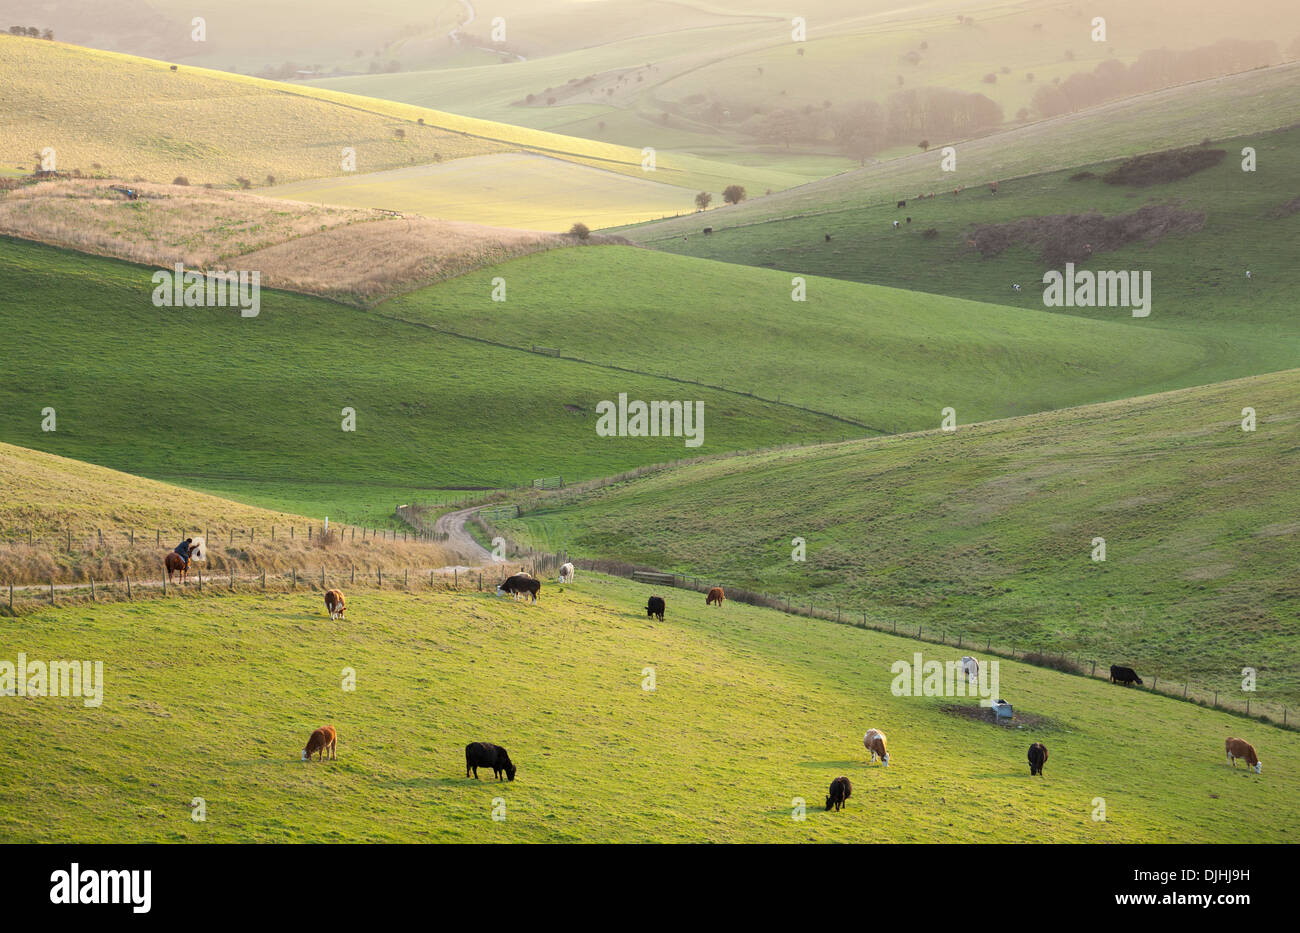 The undulating hills of the South Downs National Park, East Sussex. Stock Photo